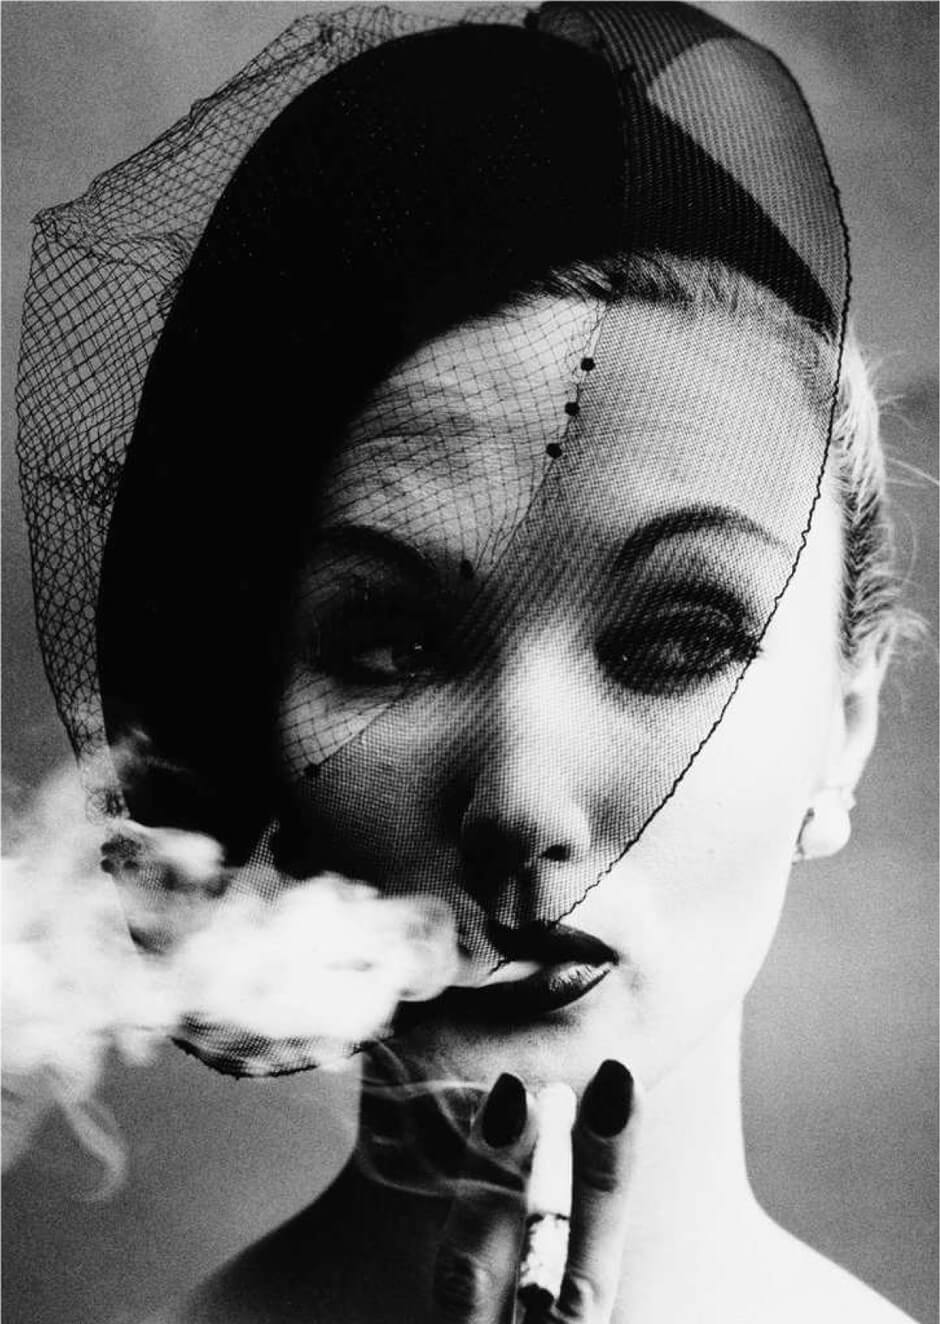 baf02360_williamklein_smoke-veil-paris-vogu